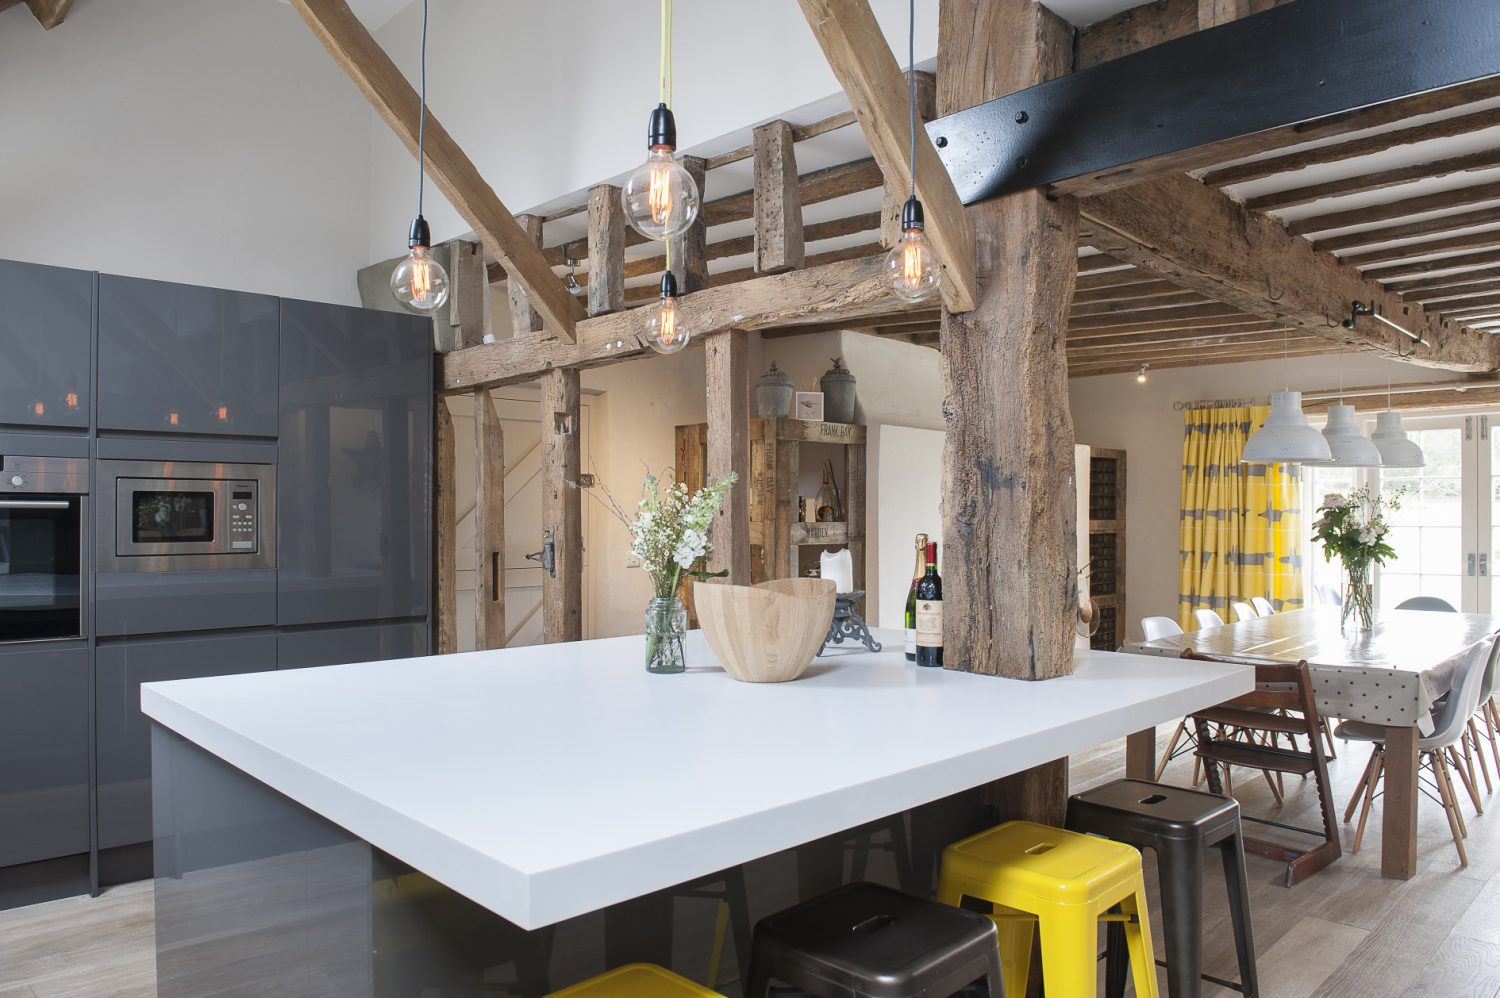 The kitchen was originally three rooms. Now open plan, an Aga and large kitchen table occupy one end of the room while a sleek modern kitchen by Howdens occupies the other. Overhead lighting comes from rooflight windows during the day and funky filament lights at night